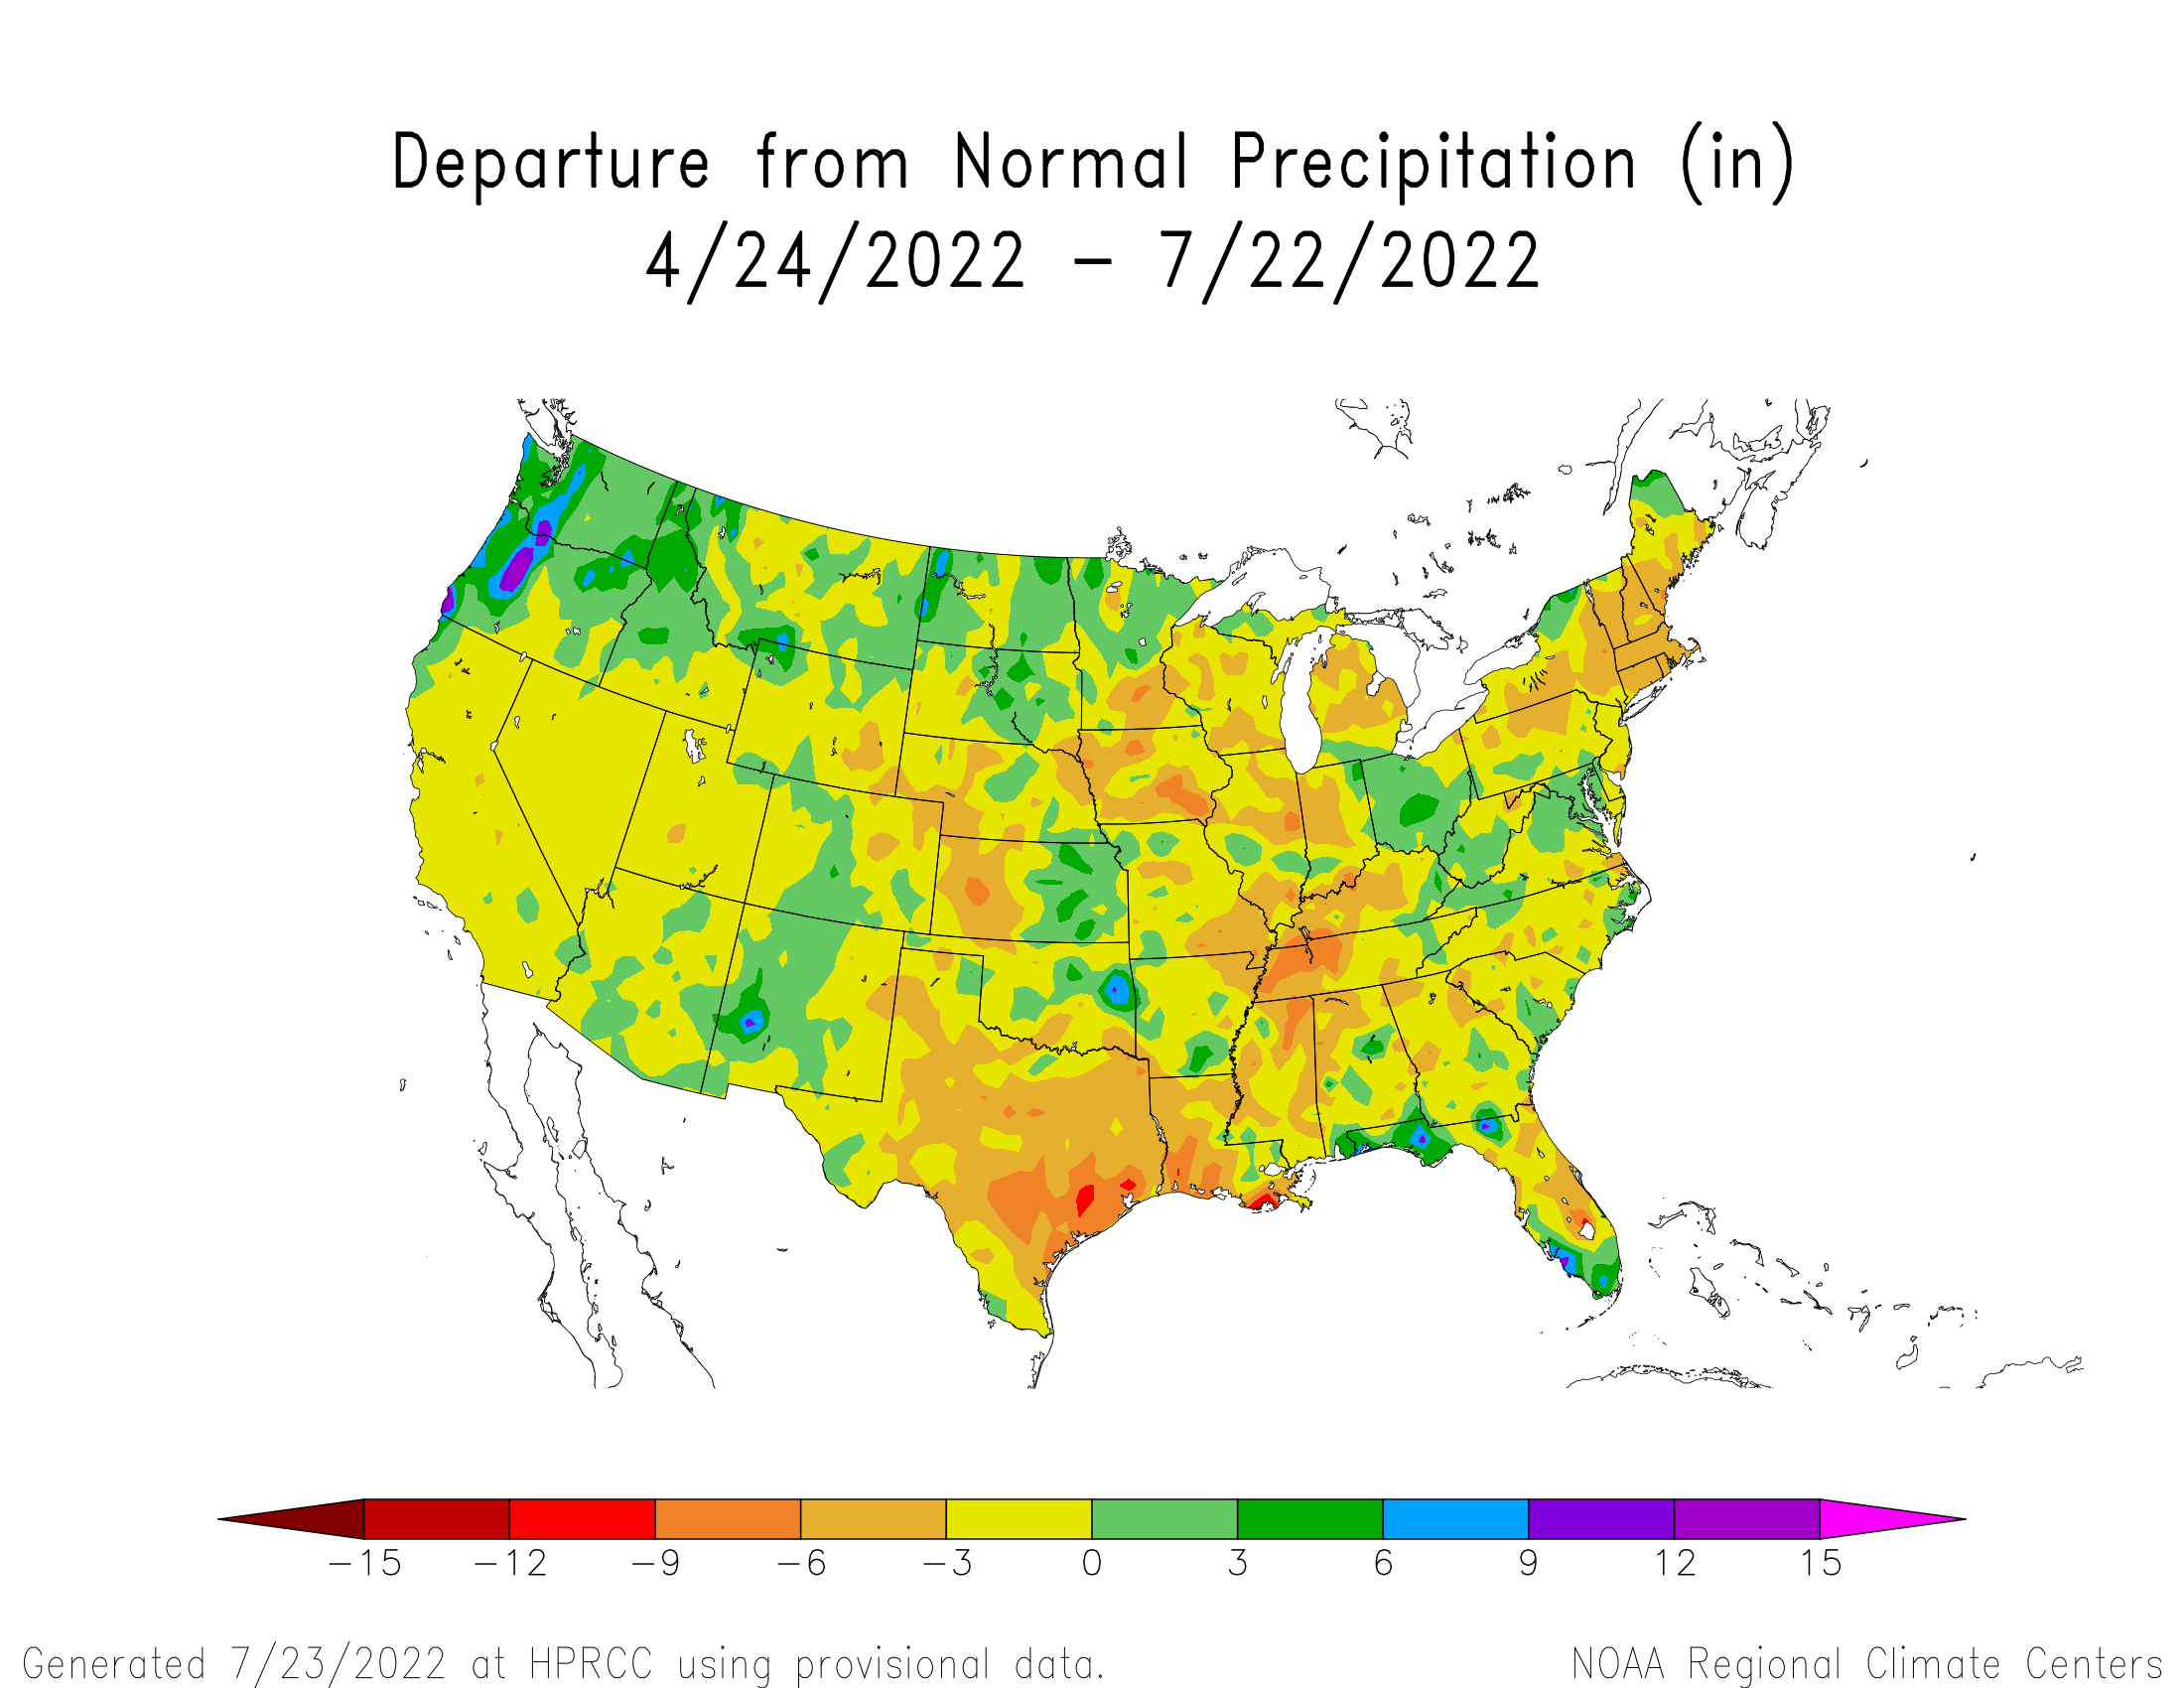 90-day Precipitation Departure from Normal